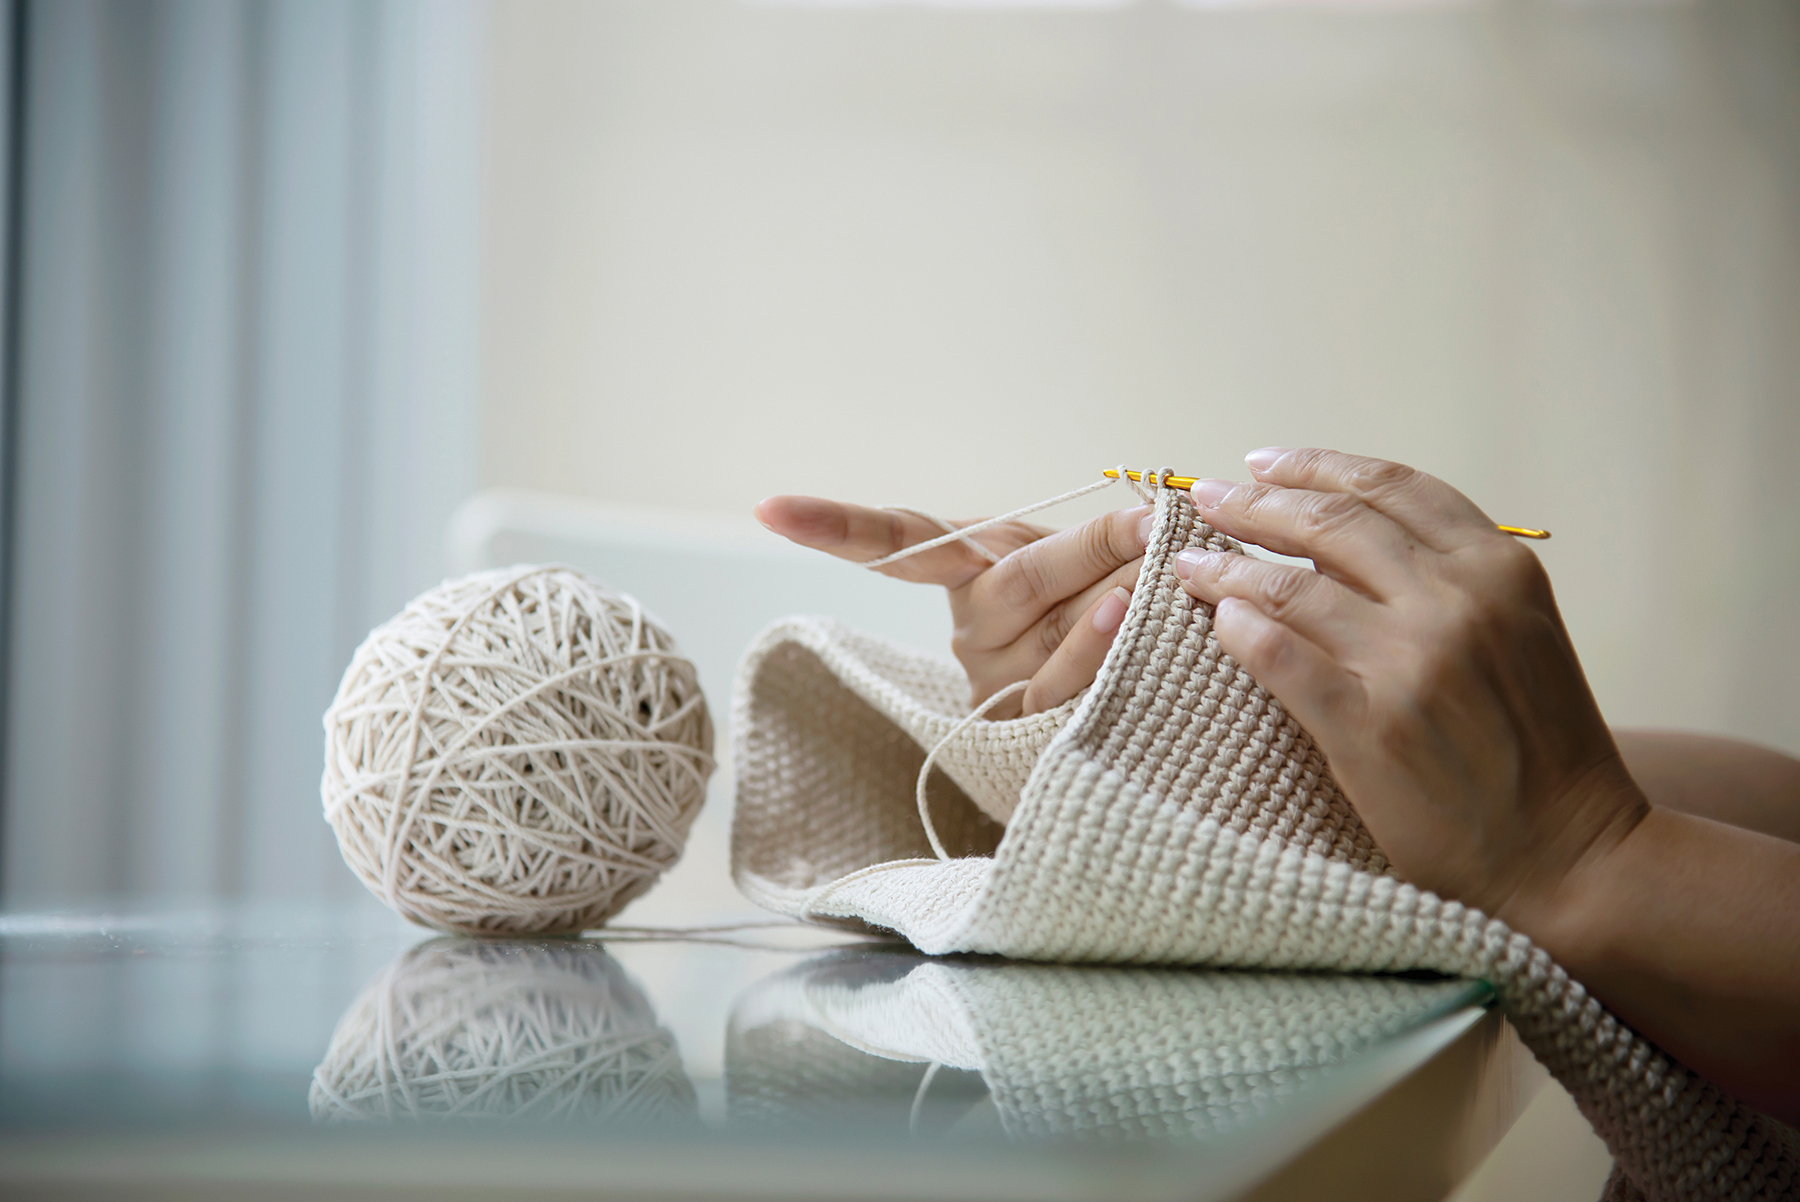 Woman's hands doing home knitting work